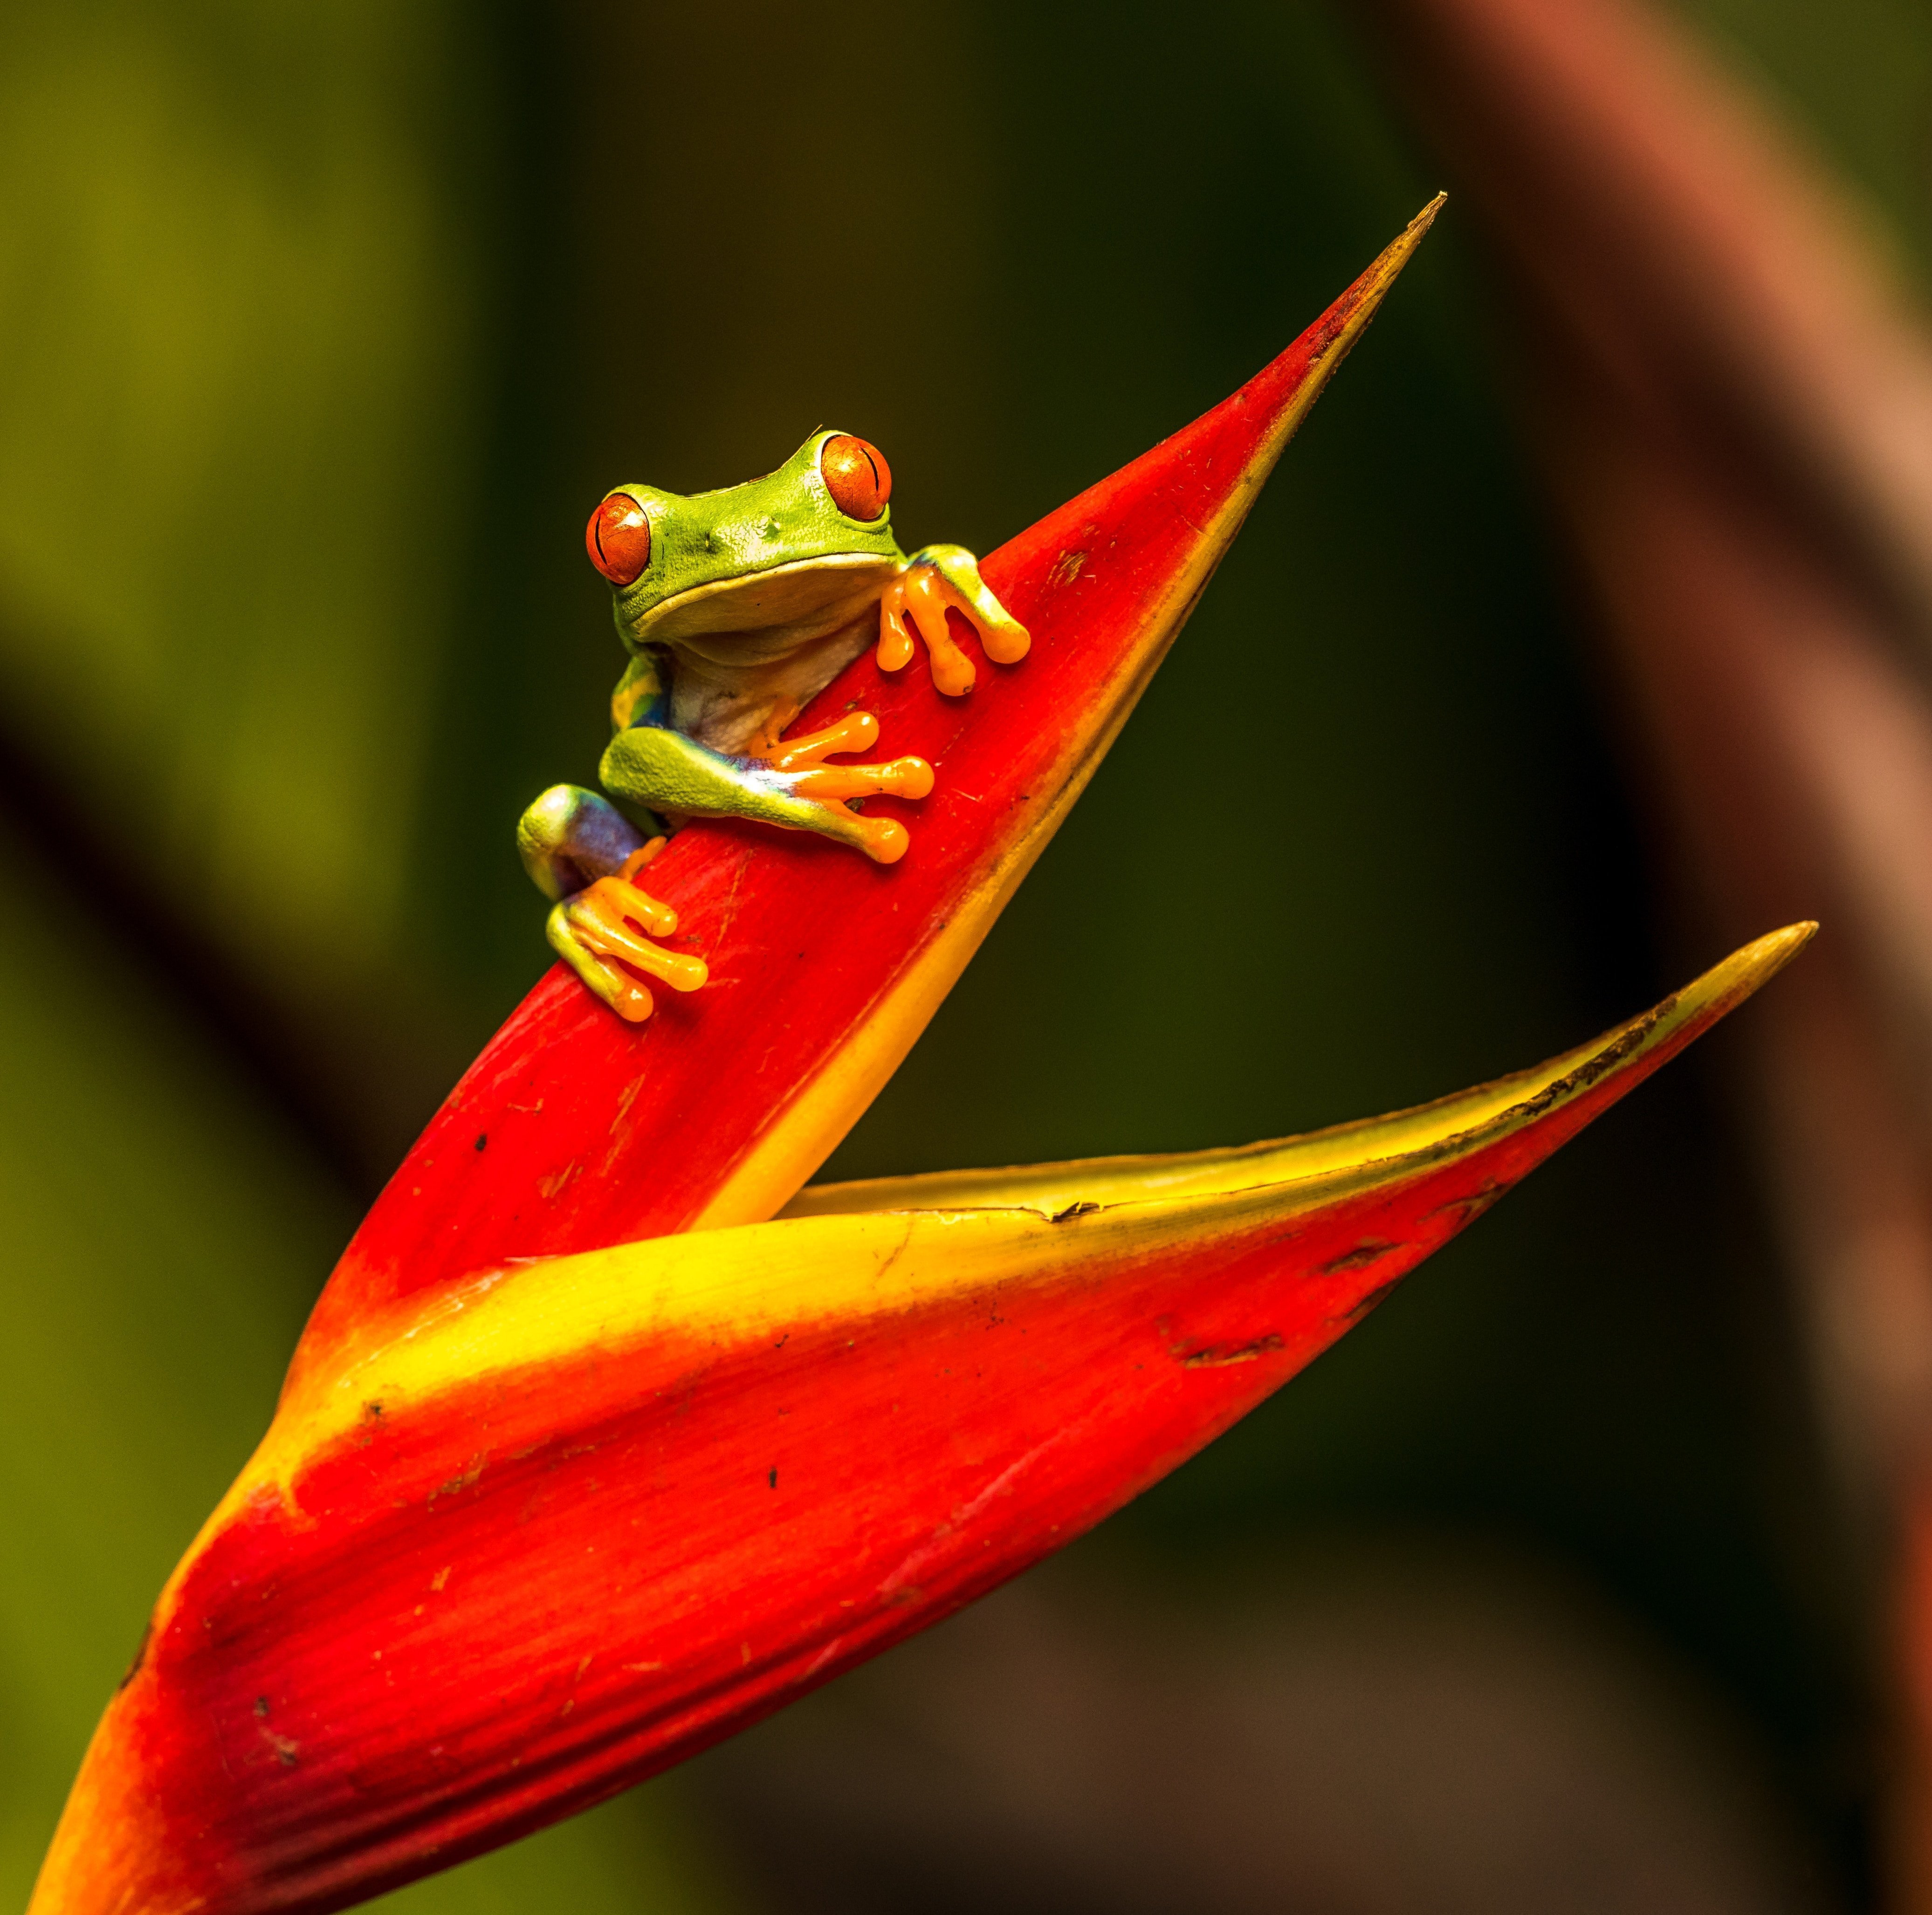 A frog sitting on a plant. | Source: Unsplash